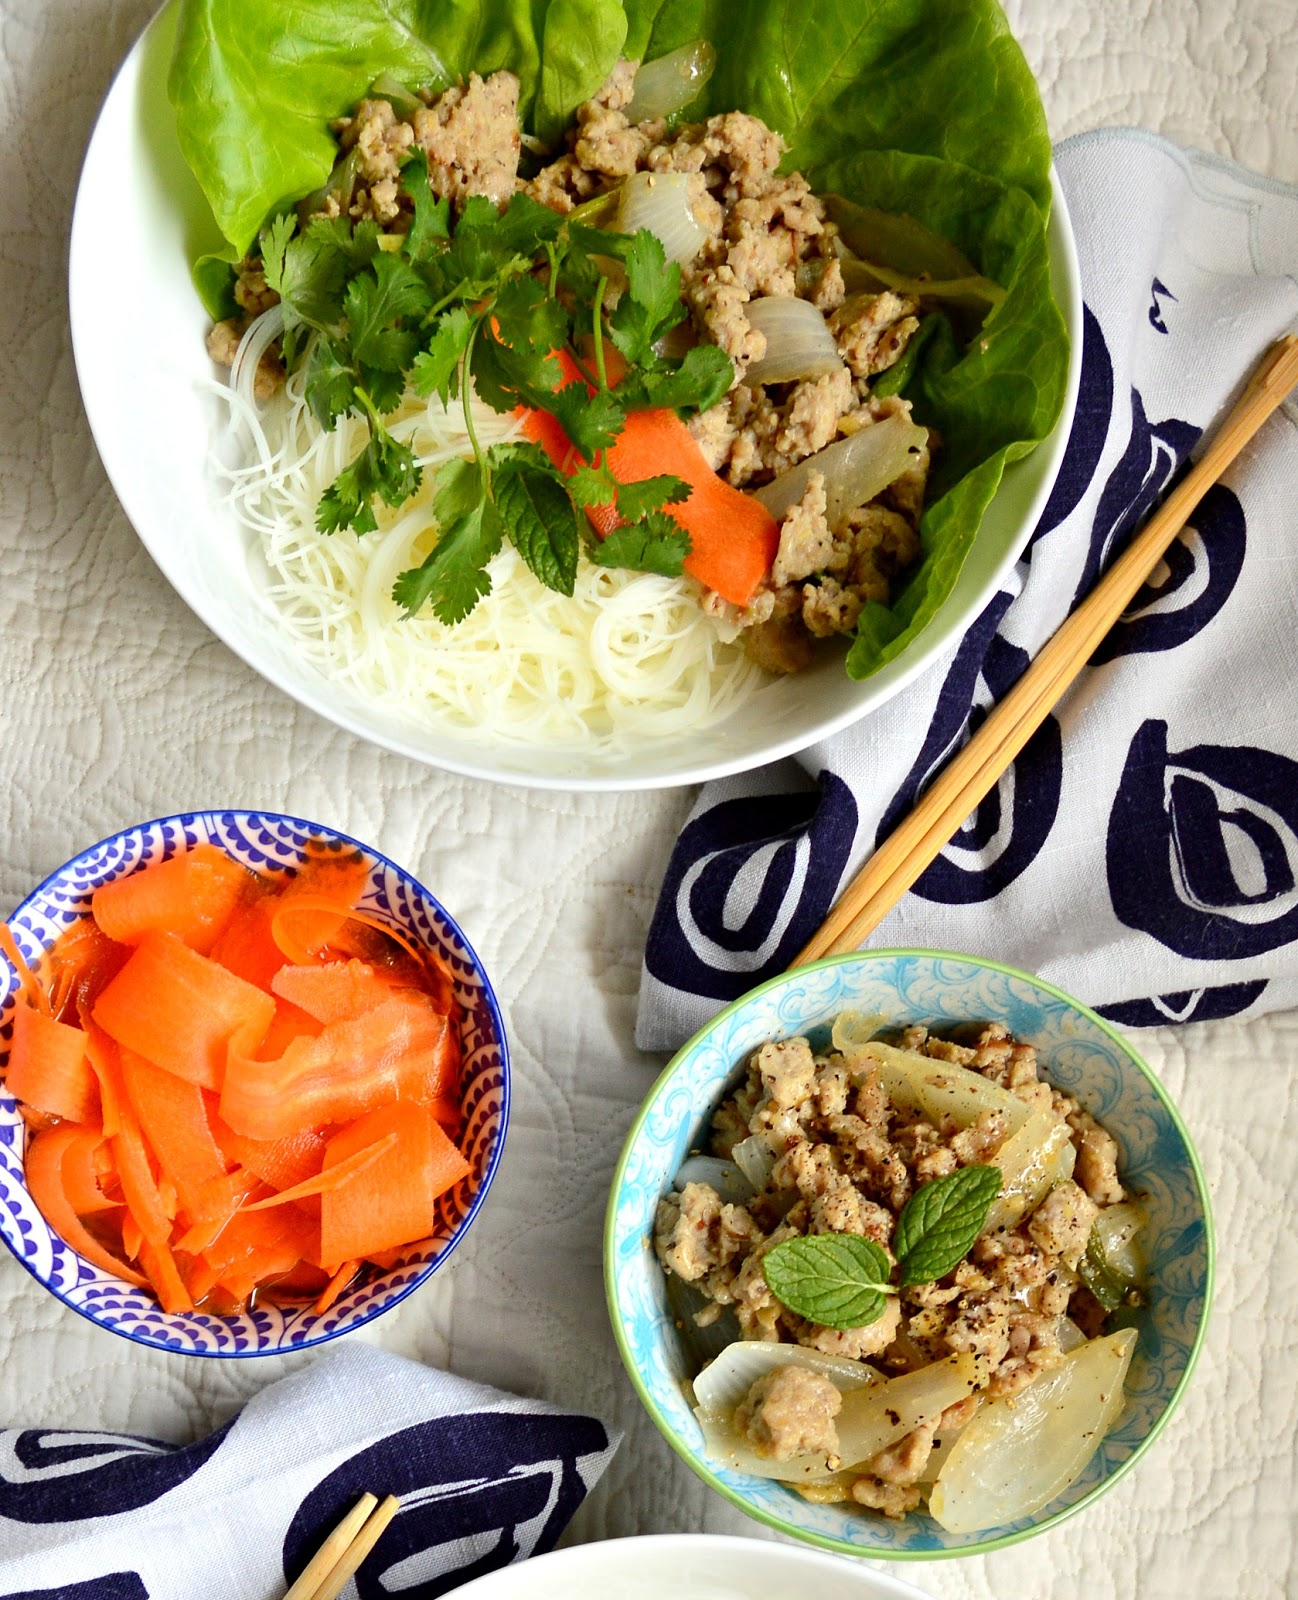 Vietnamese Chicken with Vinegar and Lemongrass is quickly stir fried and can be served over rice, in a bowl or with lettuce. This peppery, tangy garlic chicken is so good! #vietnamesefood #vietnameserecipes #vietnamesechicken #chicken www.thisishowicook.com